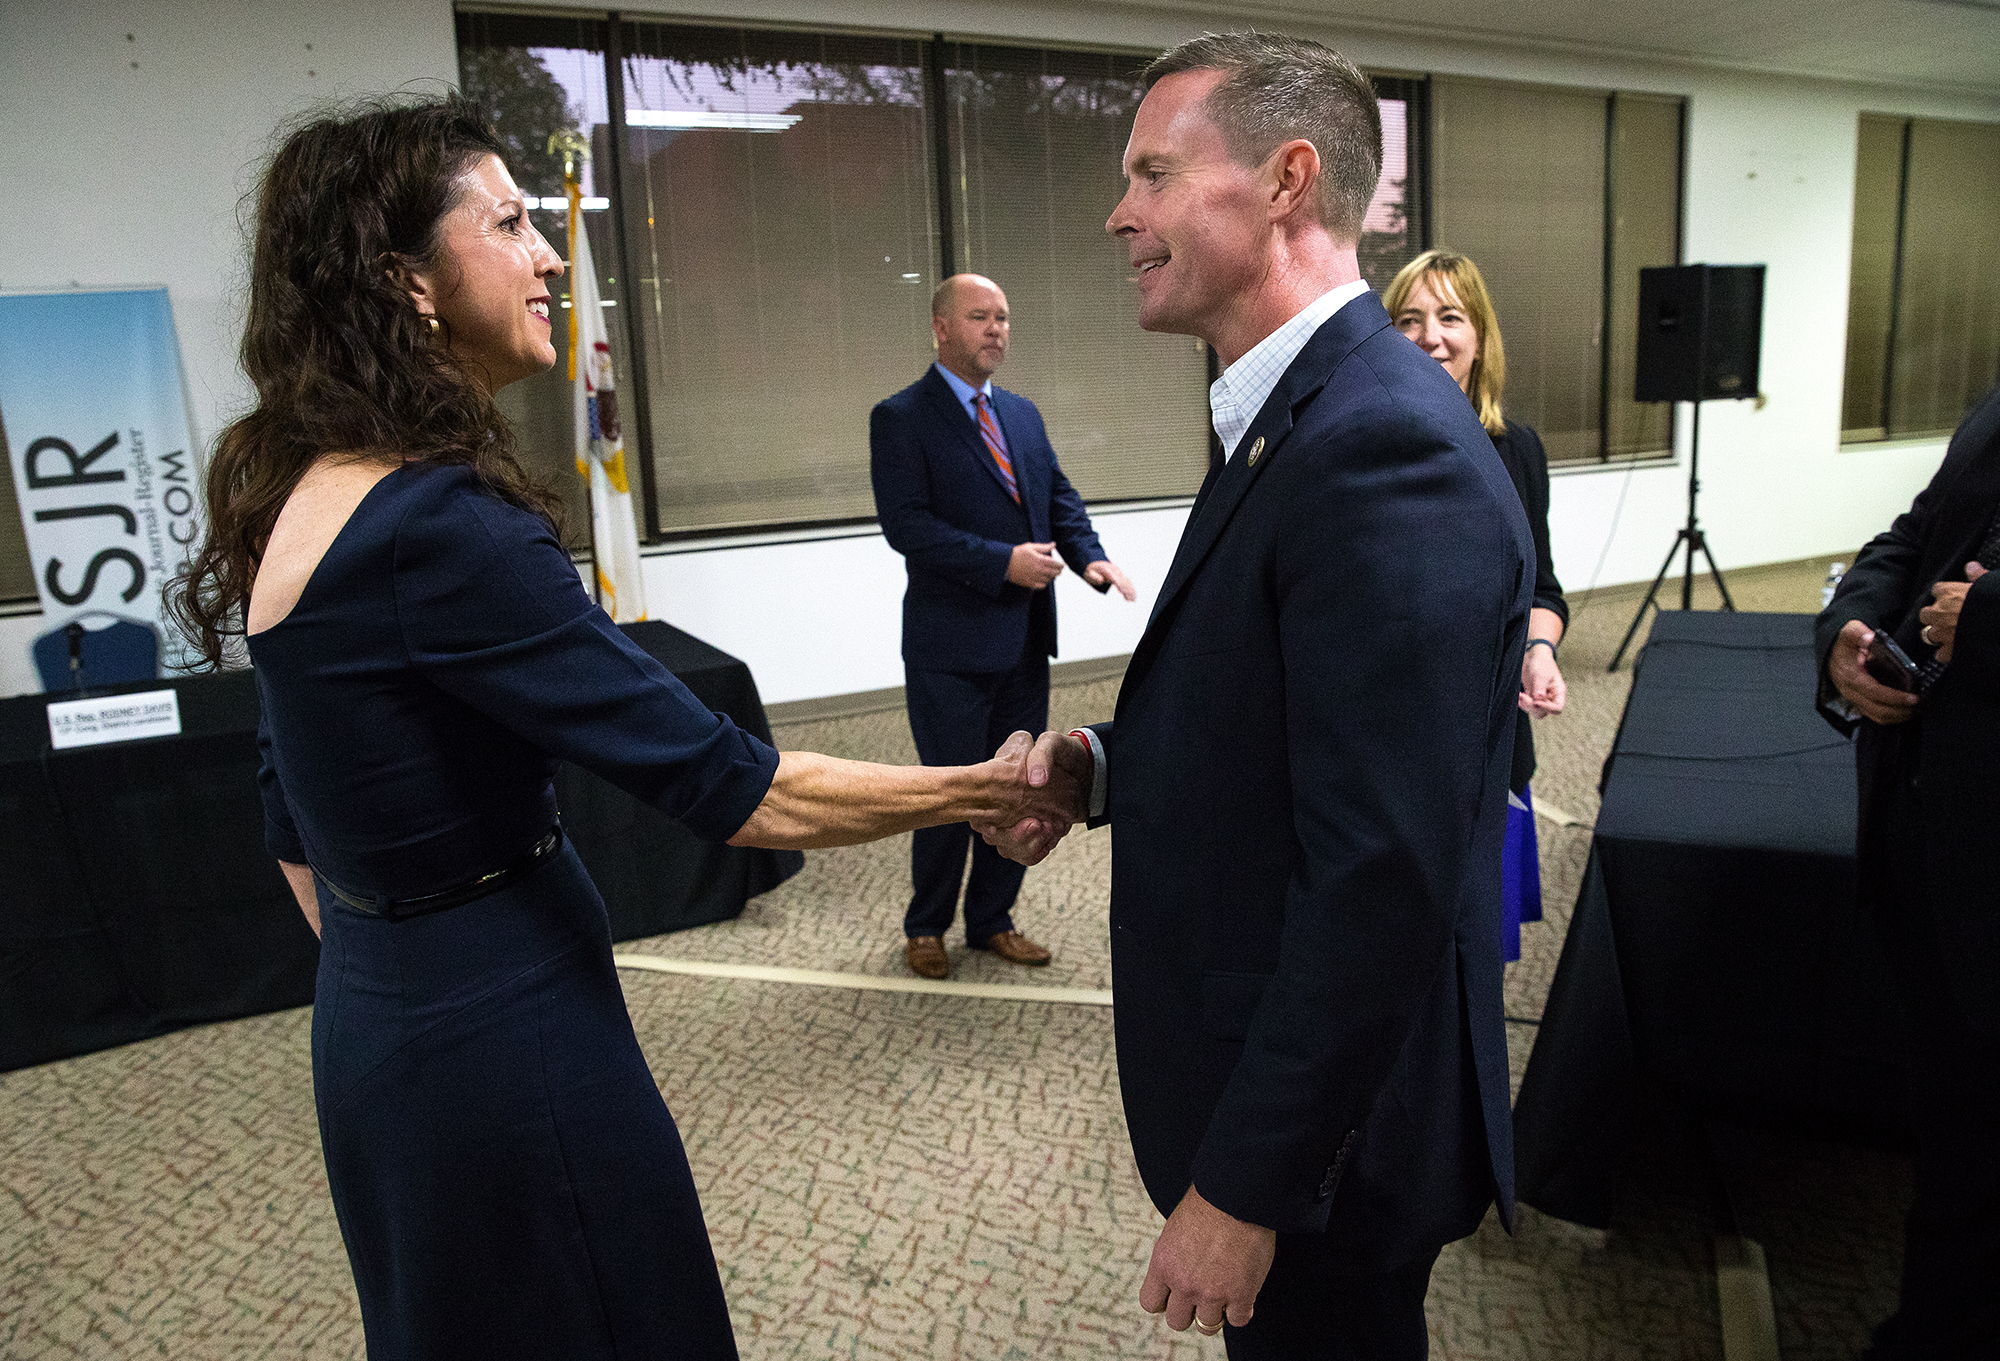 Democrat Betsy Dirksen Londrigan, left, greets Rodney Davis, R-Taylorville, before a debate at The State Journal-Register Monday, Oct. 15, 2018. The two are running for the 13th Congressional District. [Ted Schurter/The State Journal-Register]